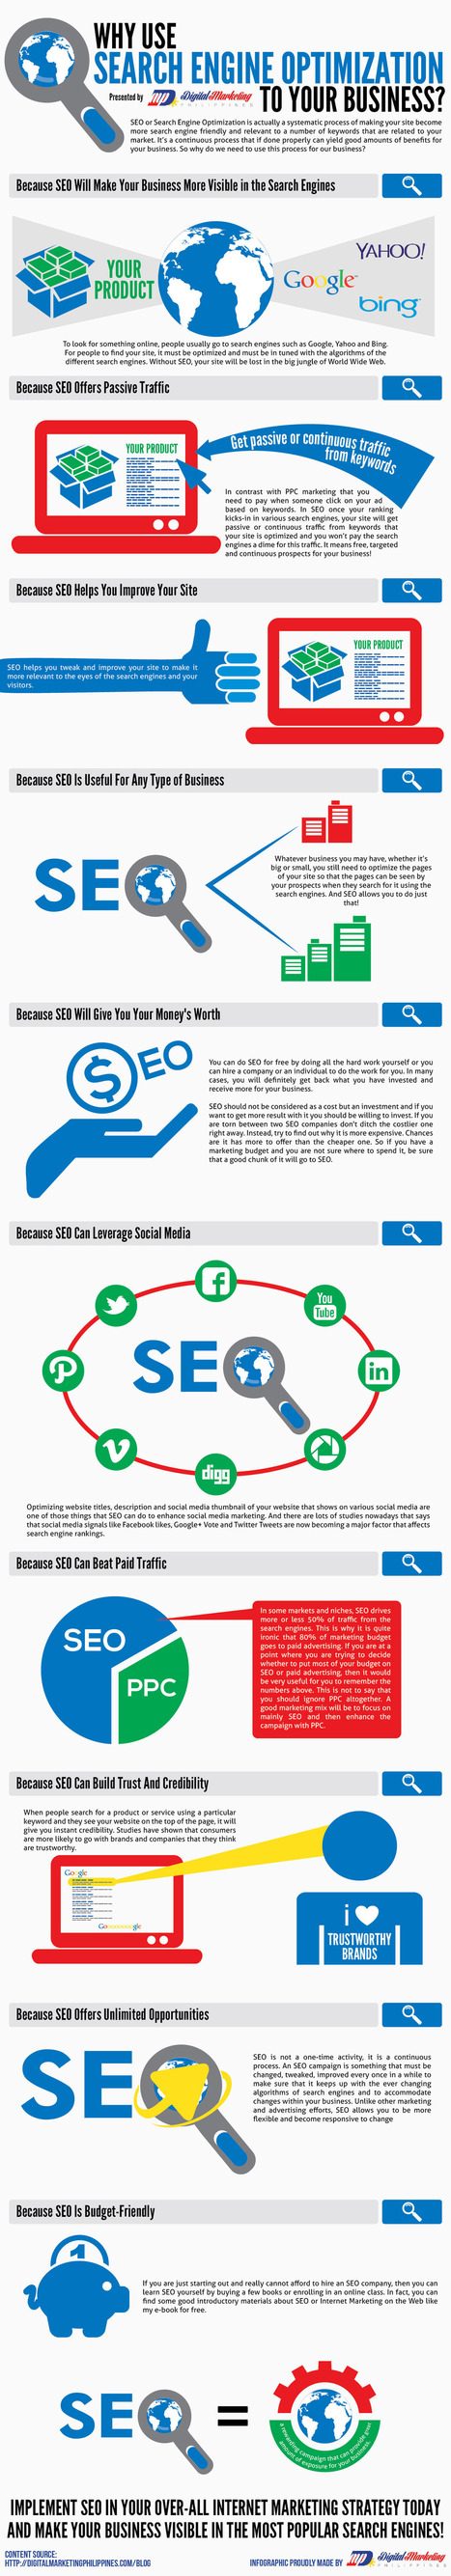 Why Use Search Engine Optimization to Your Business? (Infographic) - Business 2 Community | SEO & Social Media Marketing | Scoop.it